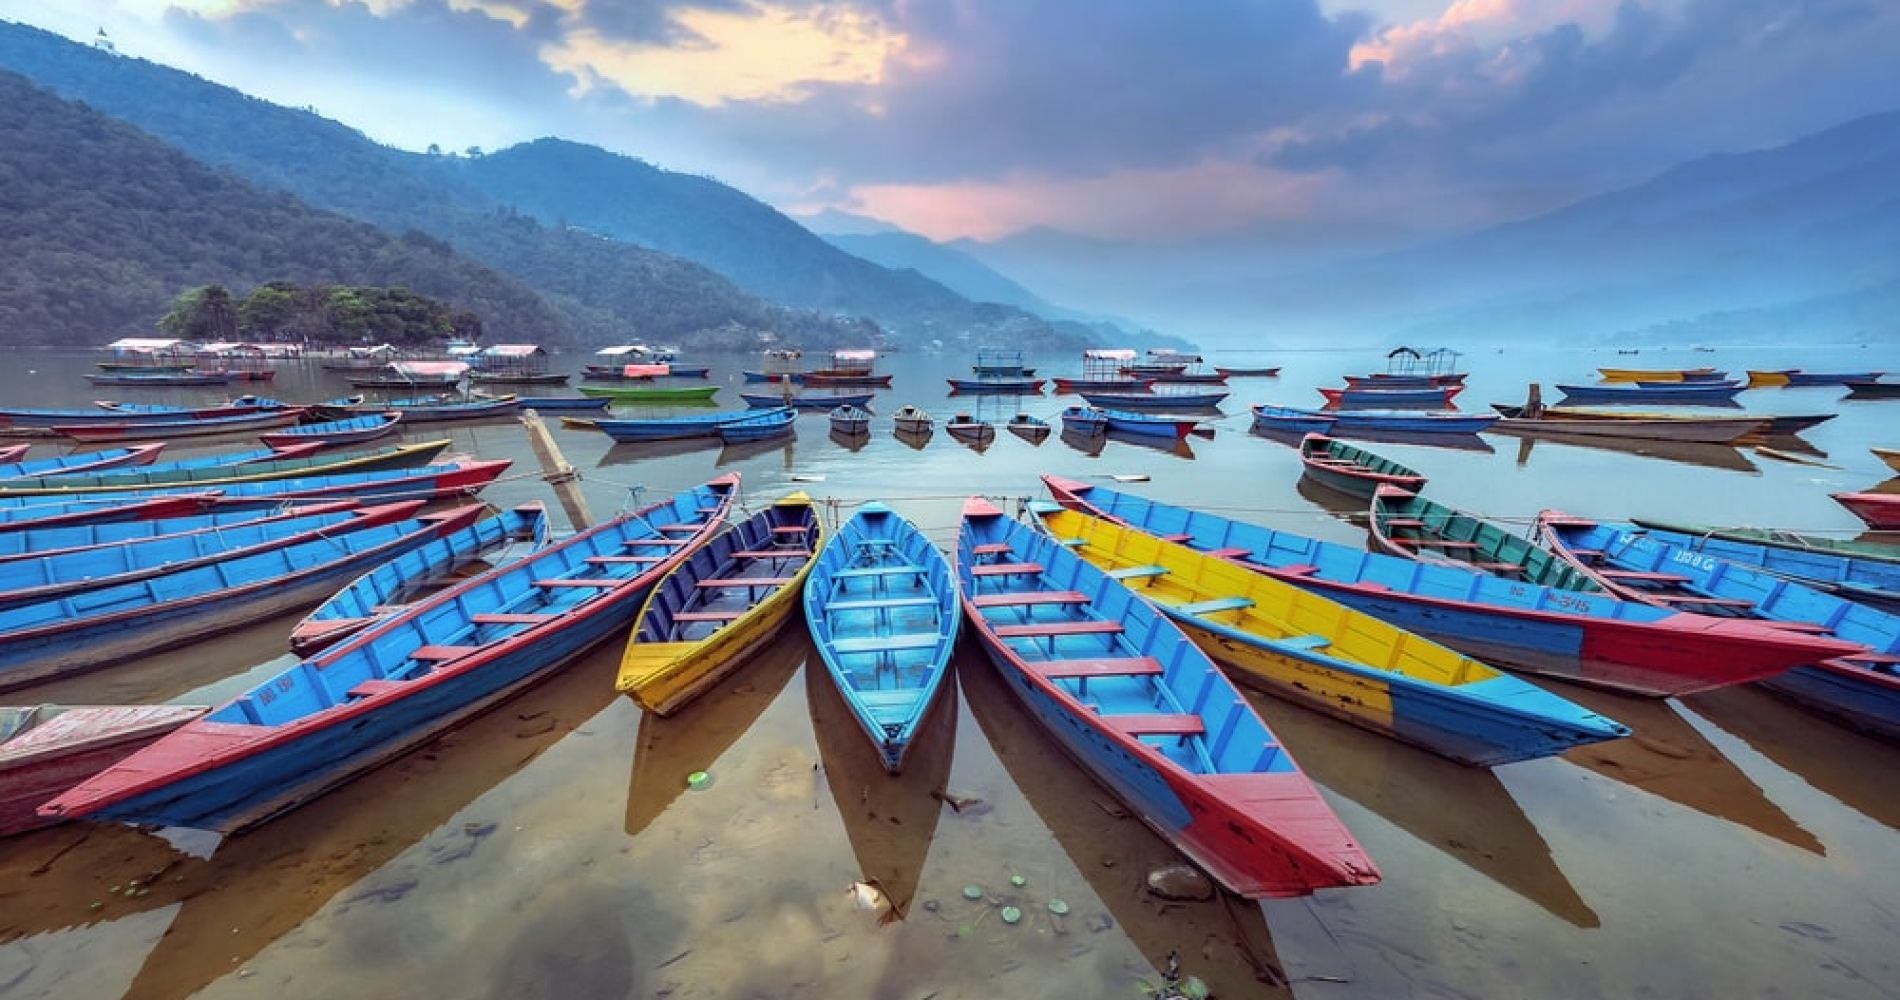 Stroll (or canoe) along Pokhara lake surrounded by the breathtaking Annapurna mountains in Nepal